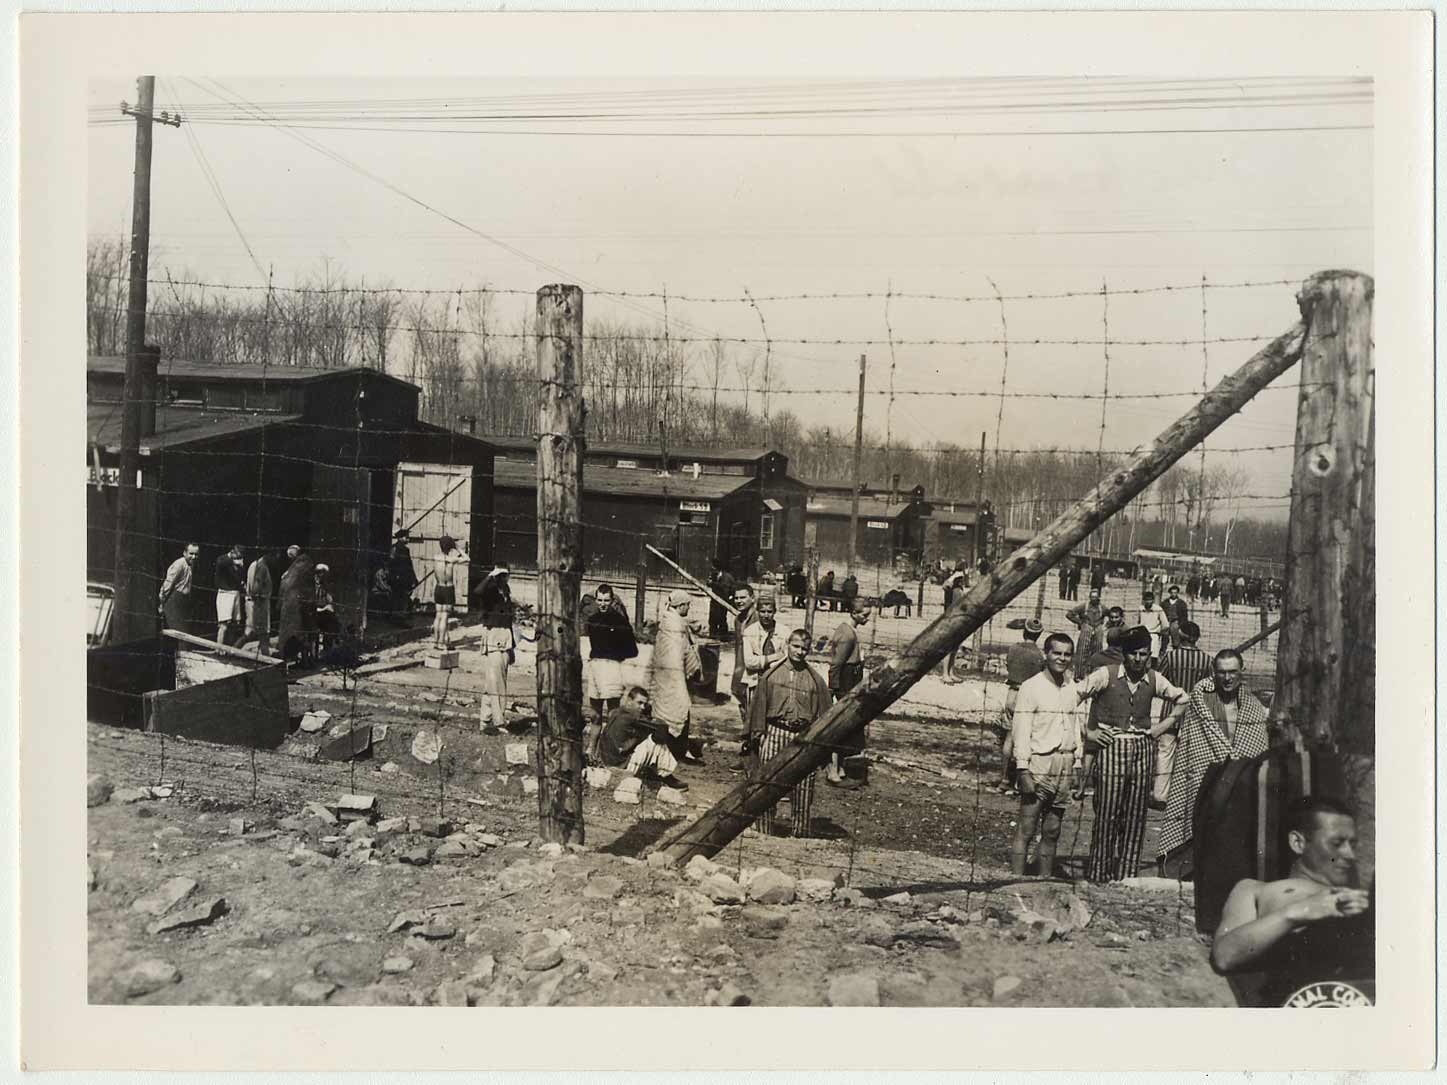 Photo prise à la libération du camp de concentration de Buchenwald par la US Army Signal Corps.